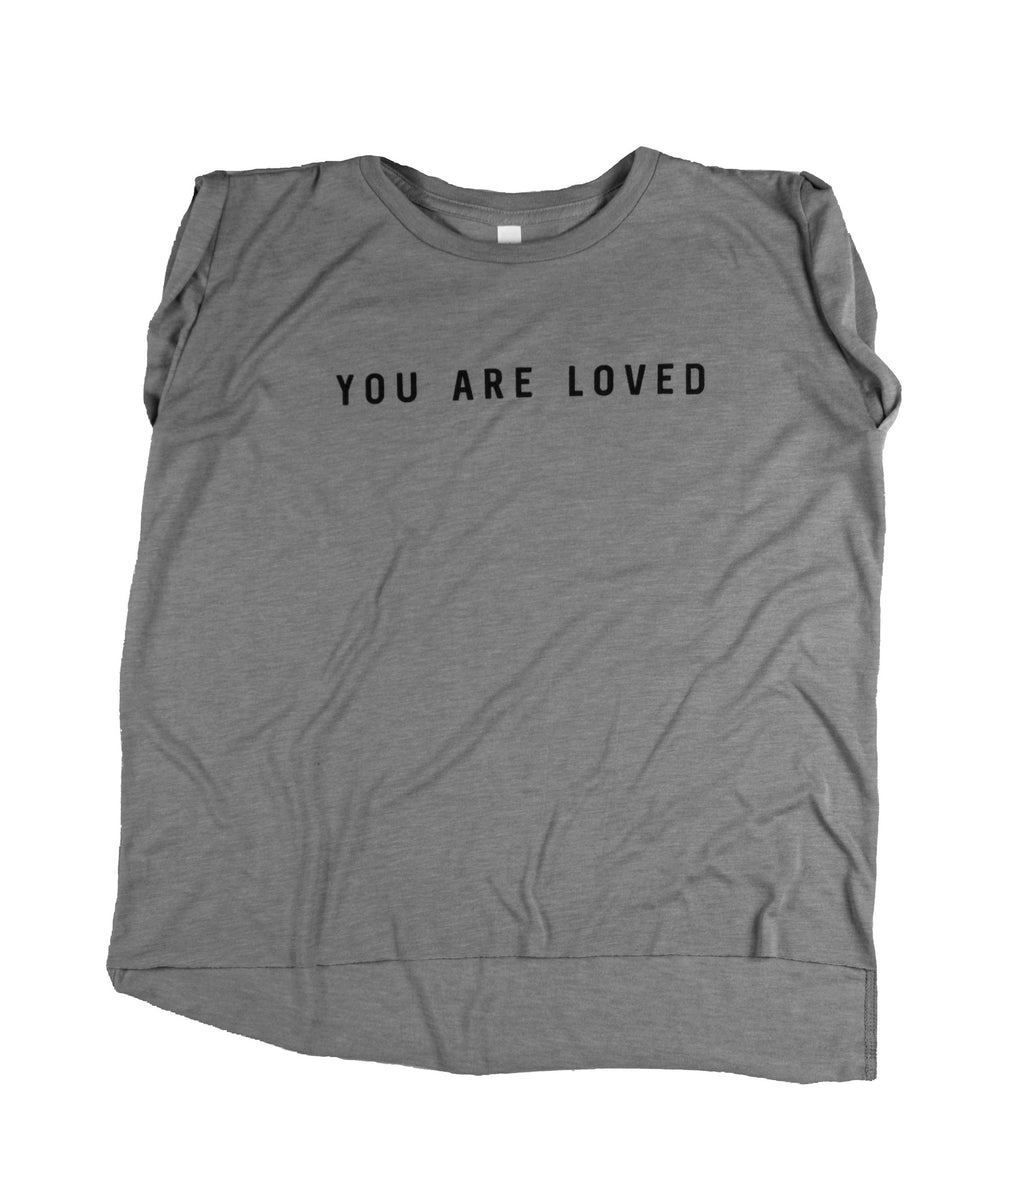 YOU ARE LOVED CONCRETE WOMEN'S ROLLED CUFF MUSCLE T-SHIRT